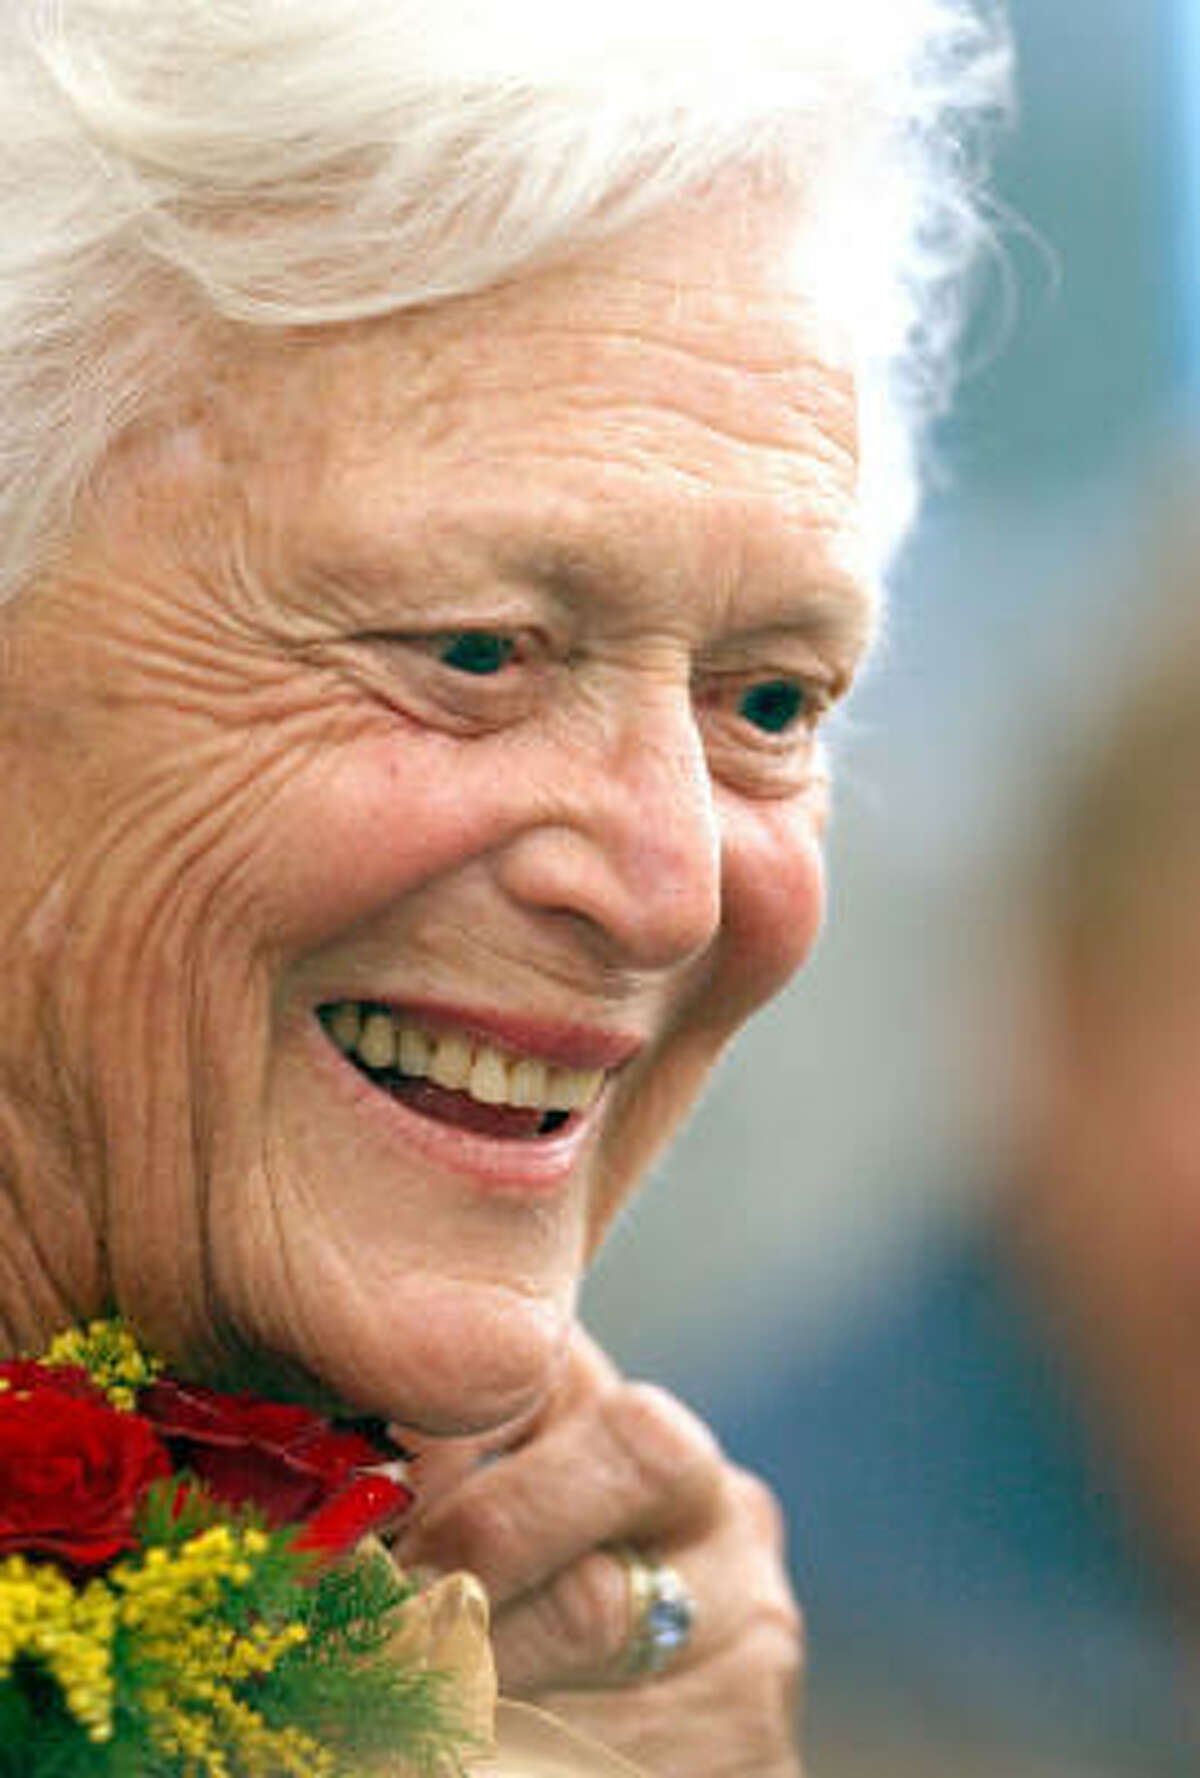 Former First Lady Barbara Bush smiles at a student during a visit to Gaffney Elementary School in New Britain, Conn., Sept. 8, 2003, part of her efforts to promote literacy.